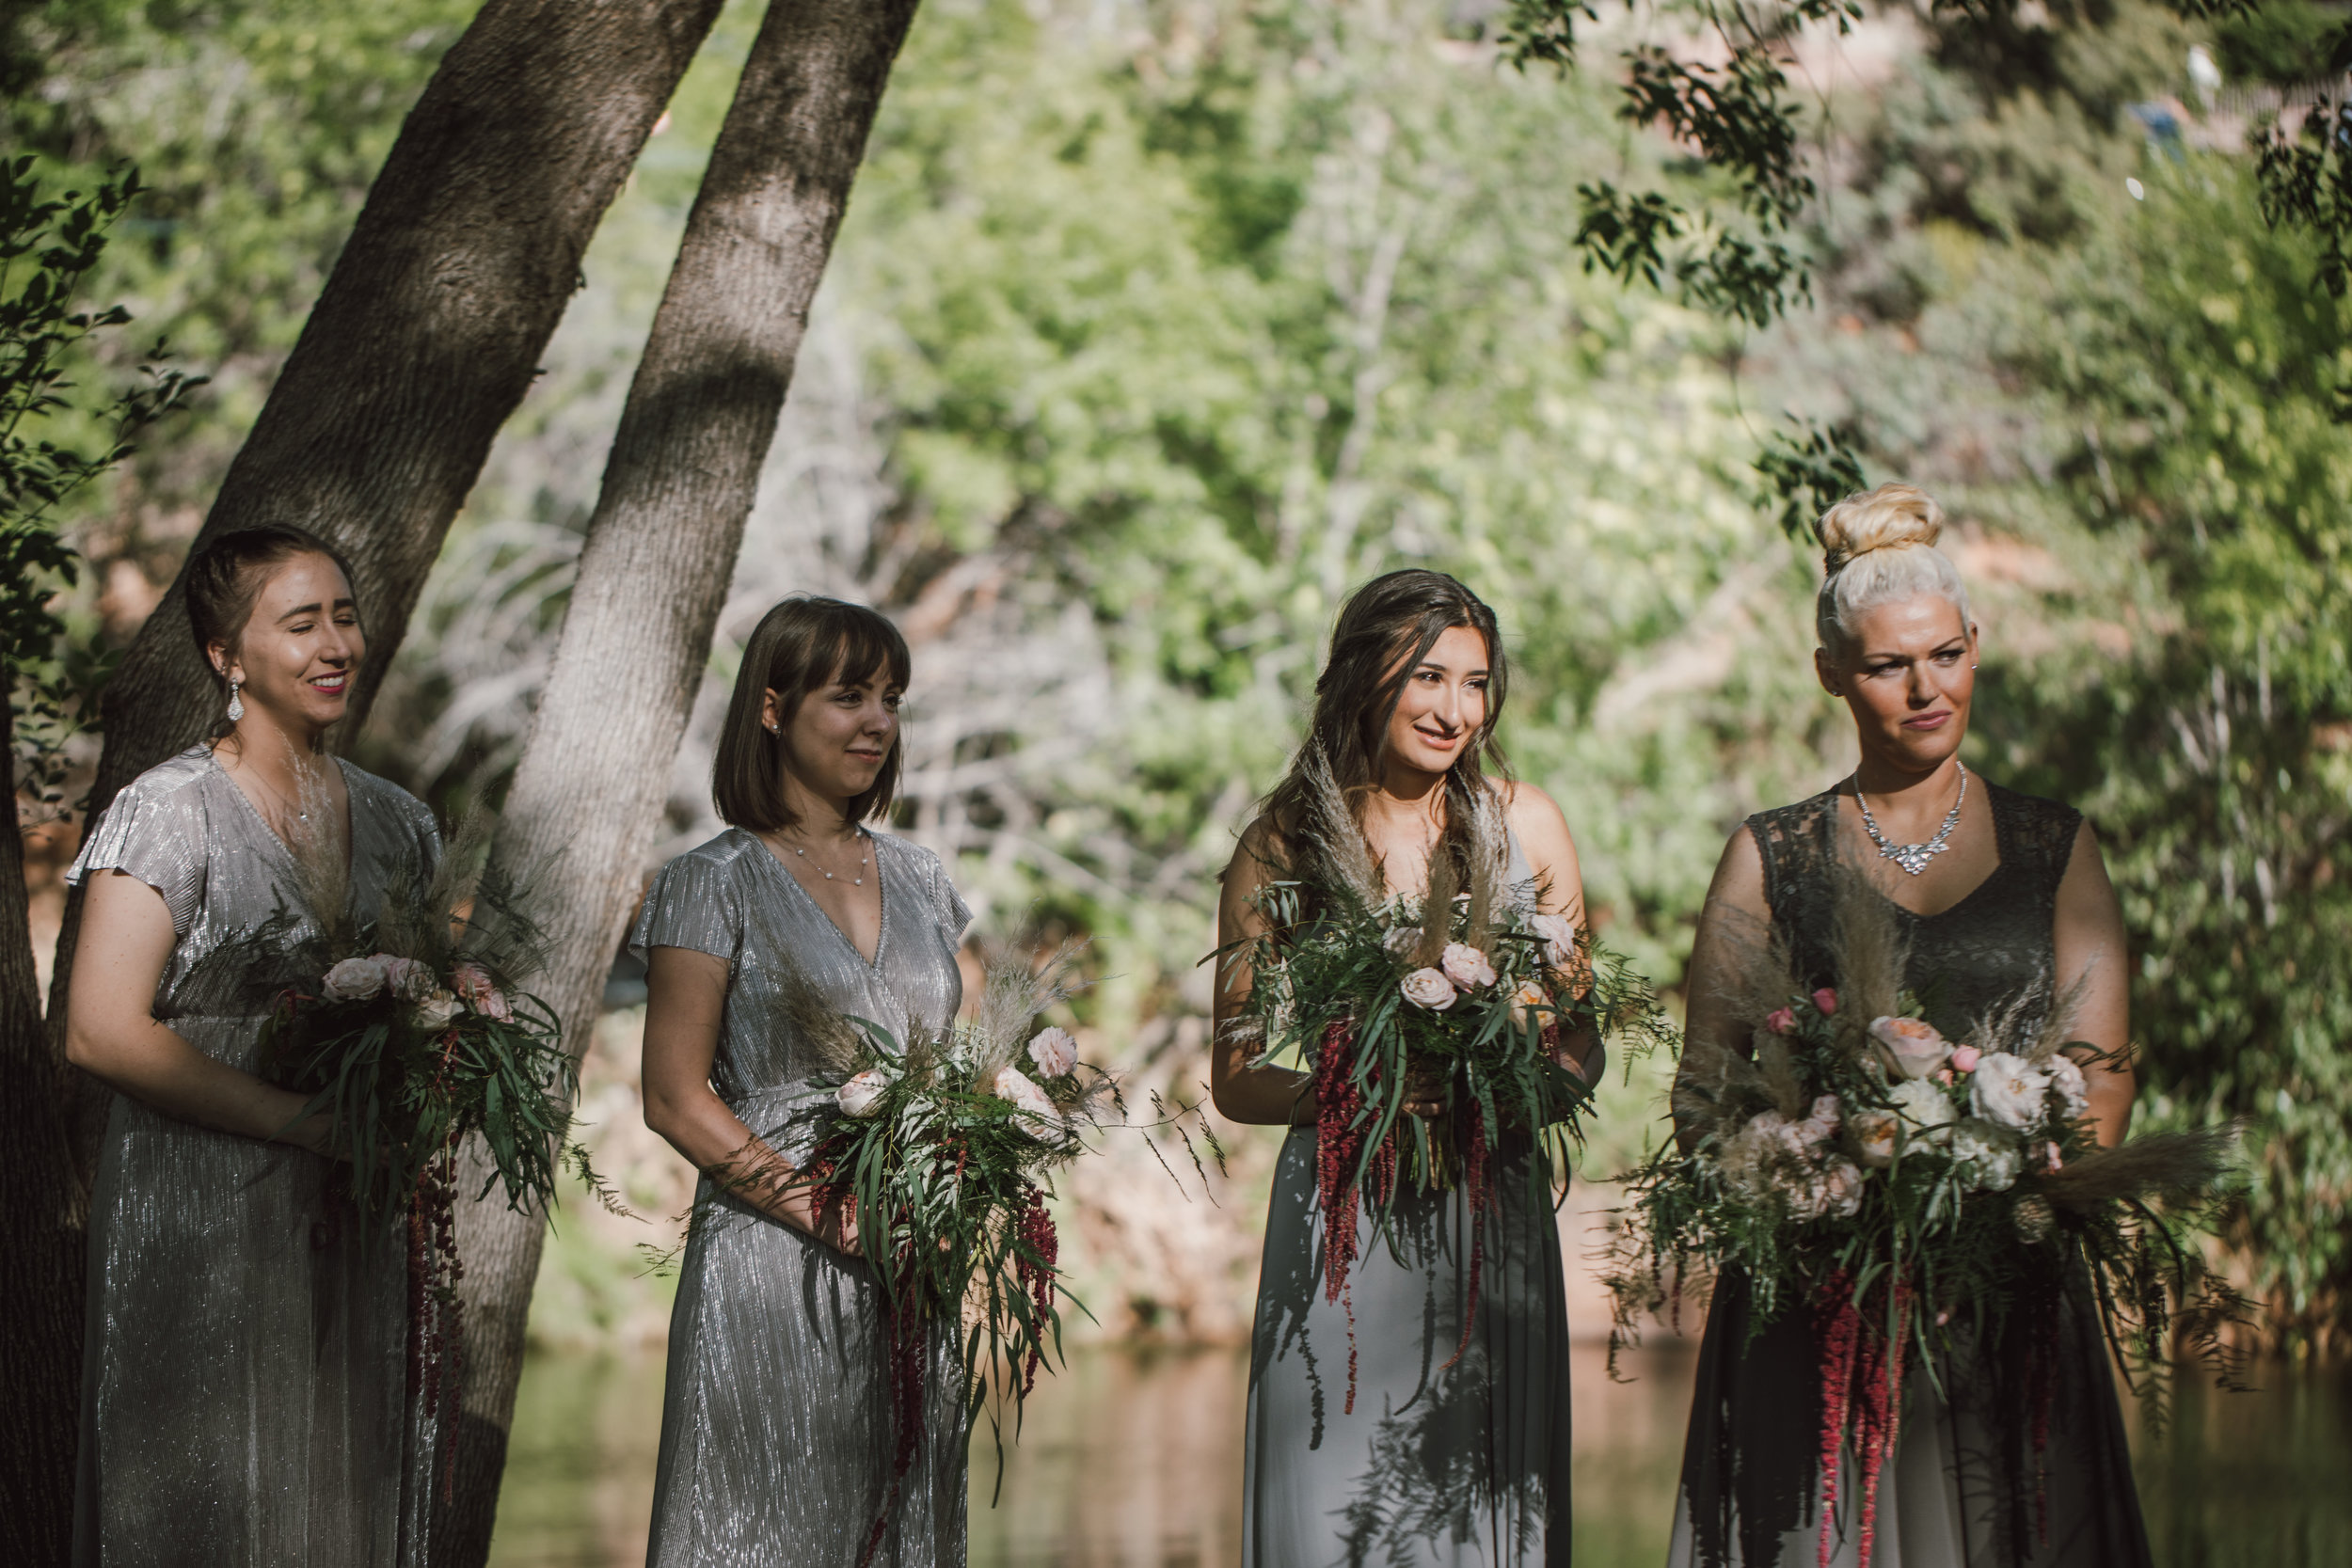 Los Abrigados Wedding - Arizona Florist Phoenix Scottsdale Sedona - Bridesmaids in Mixed Tones of Grey